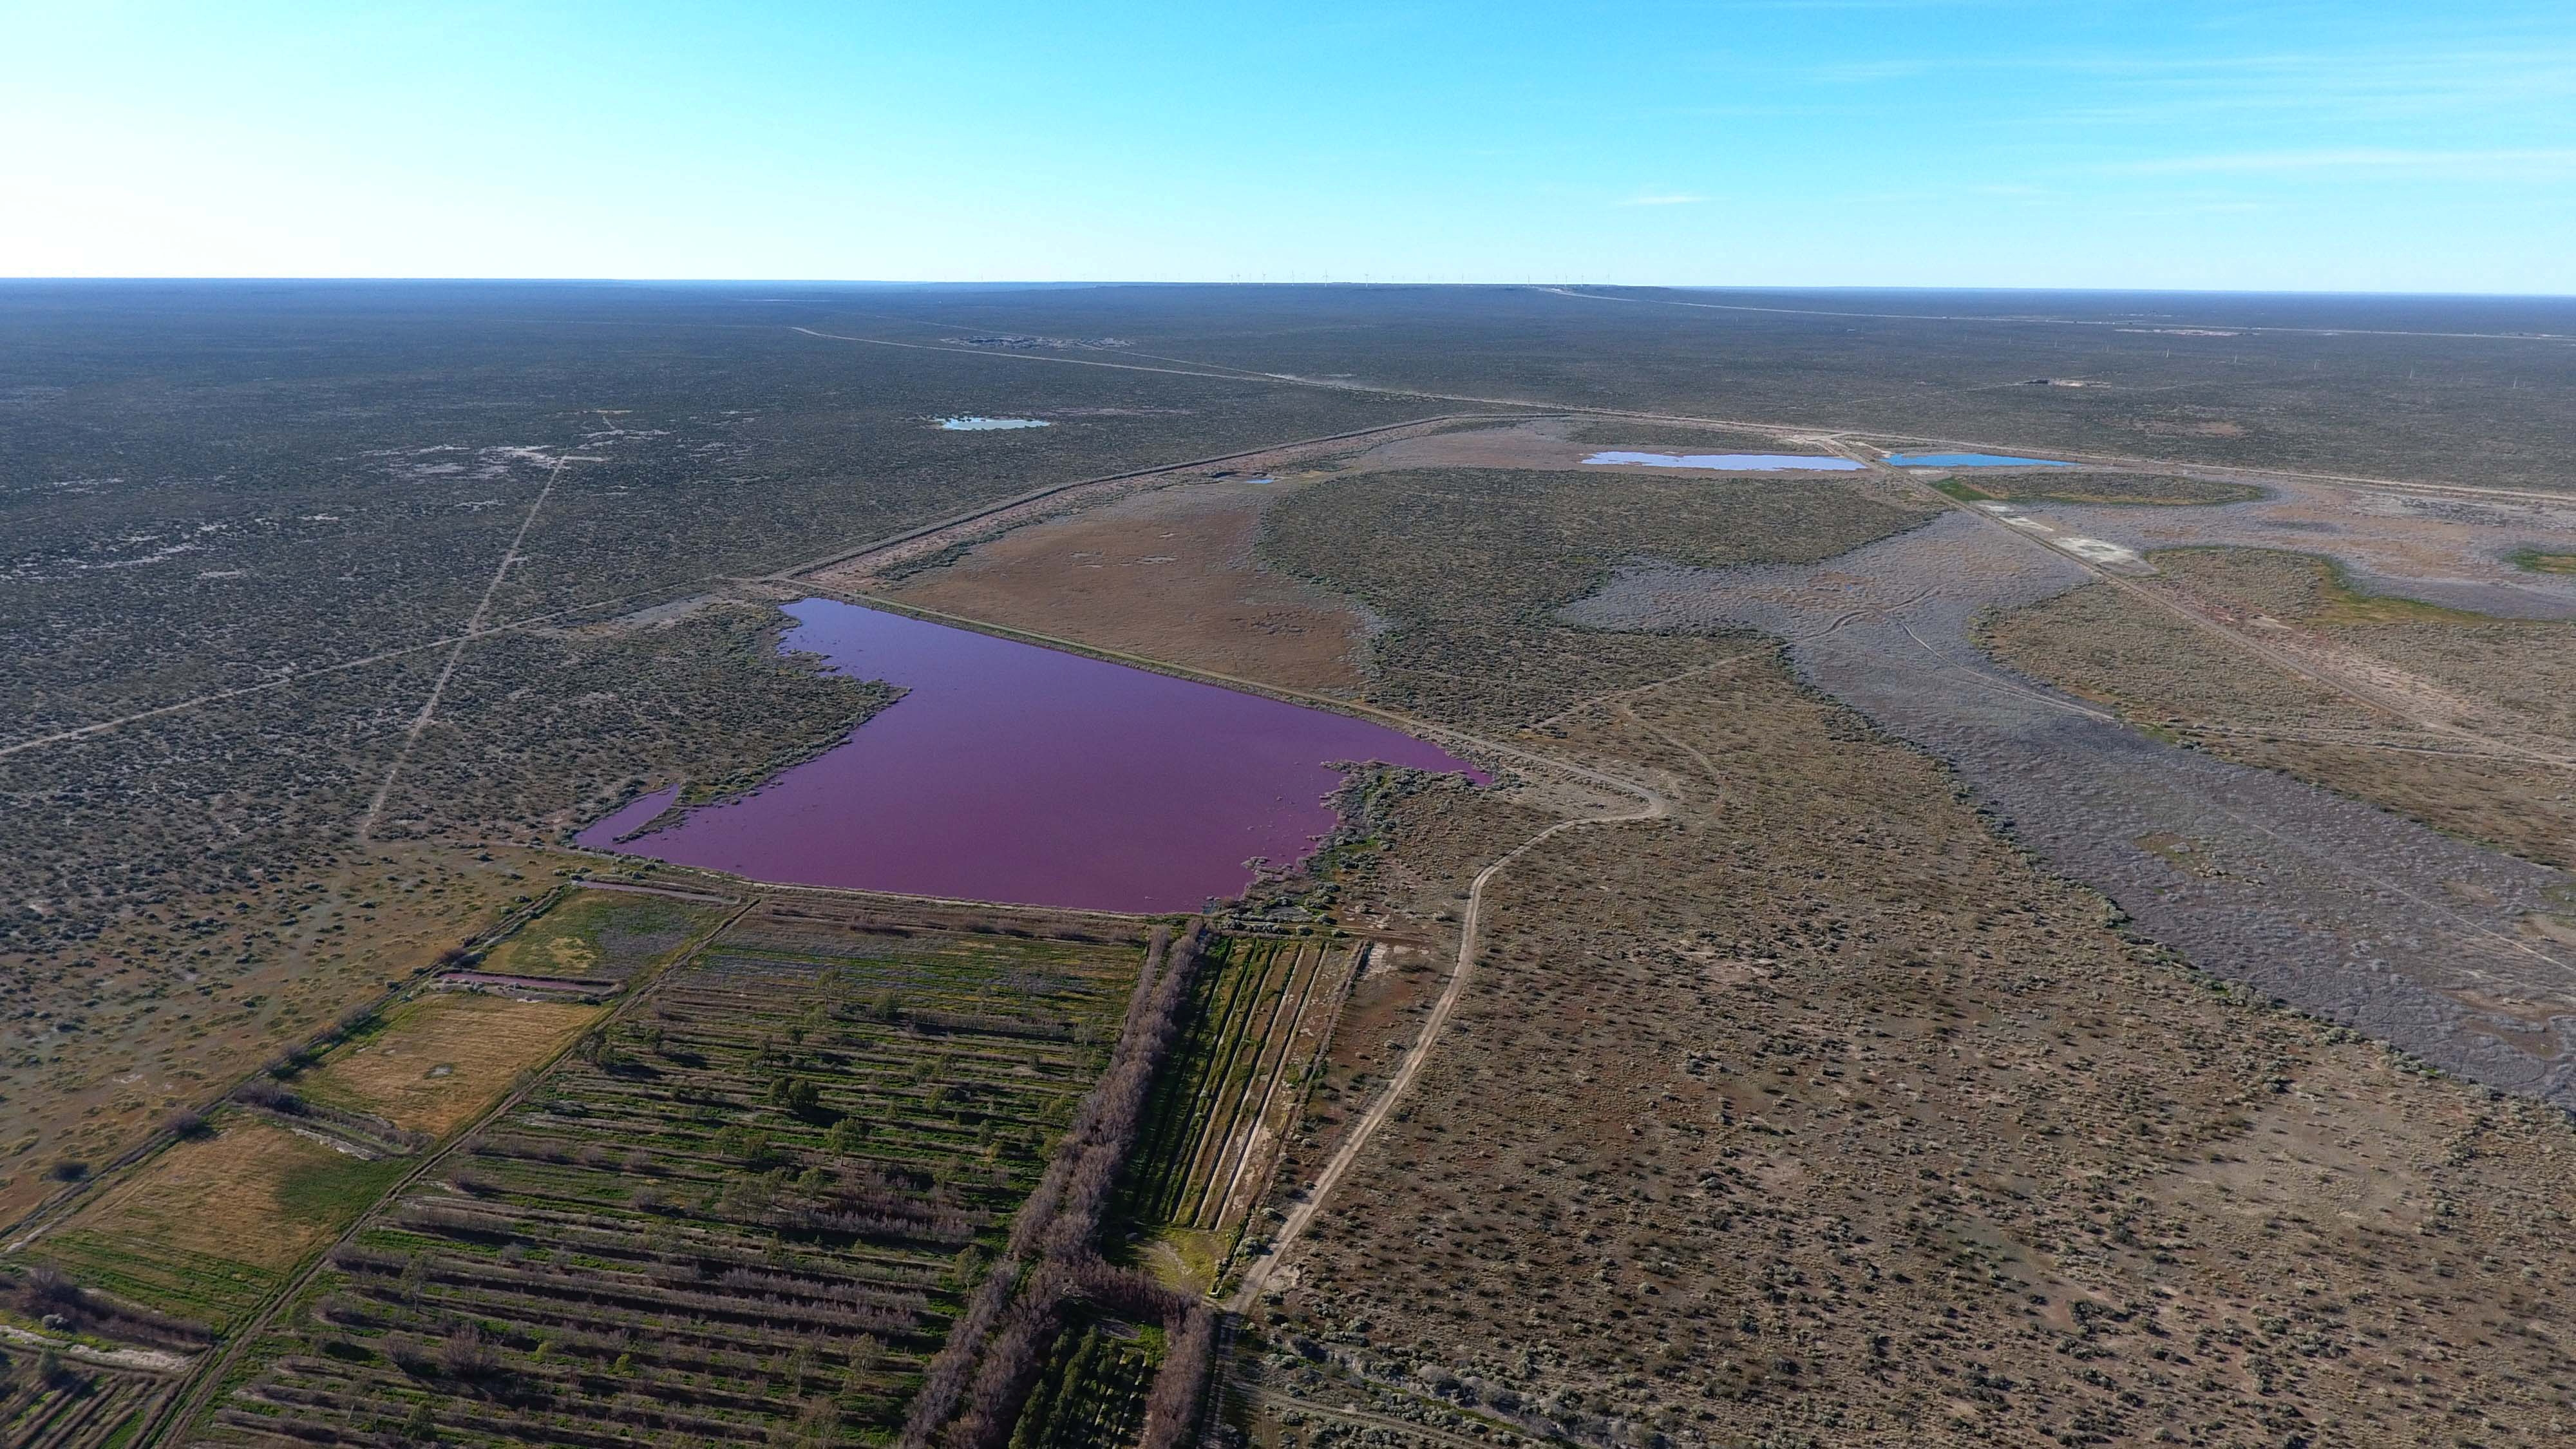 Aerial view of the Corfo lagoon, that turned pink due to chemical waste, in Trelew, Chubut, Argentina July 29, 2021. Picture taken July 29, 2021 with a drone. Daniel Feldman/Handout via REUTERS